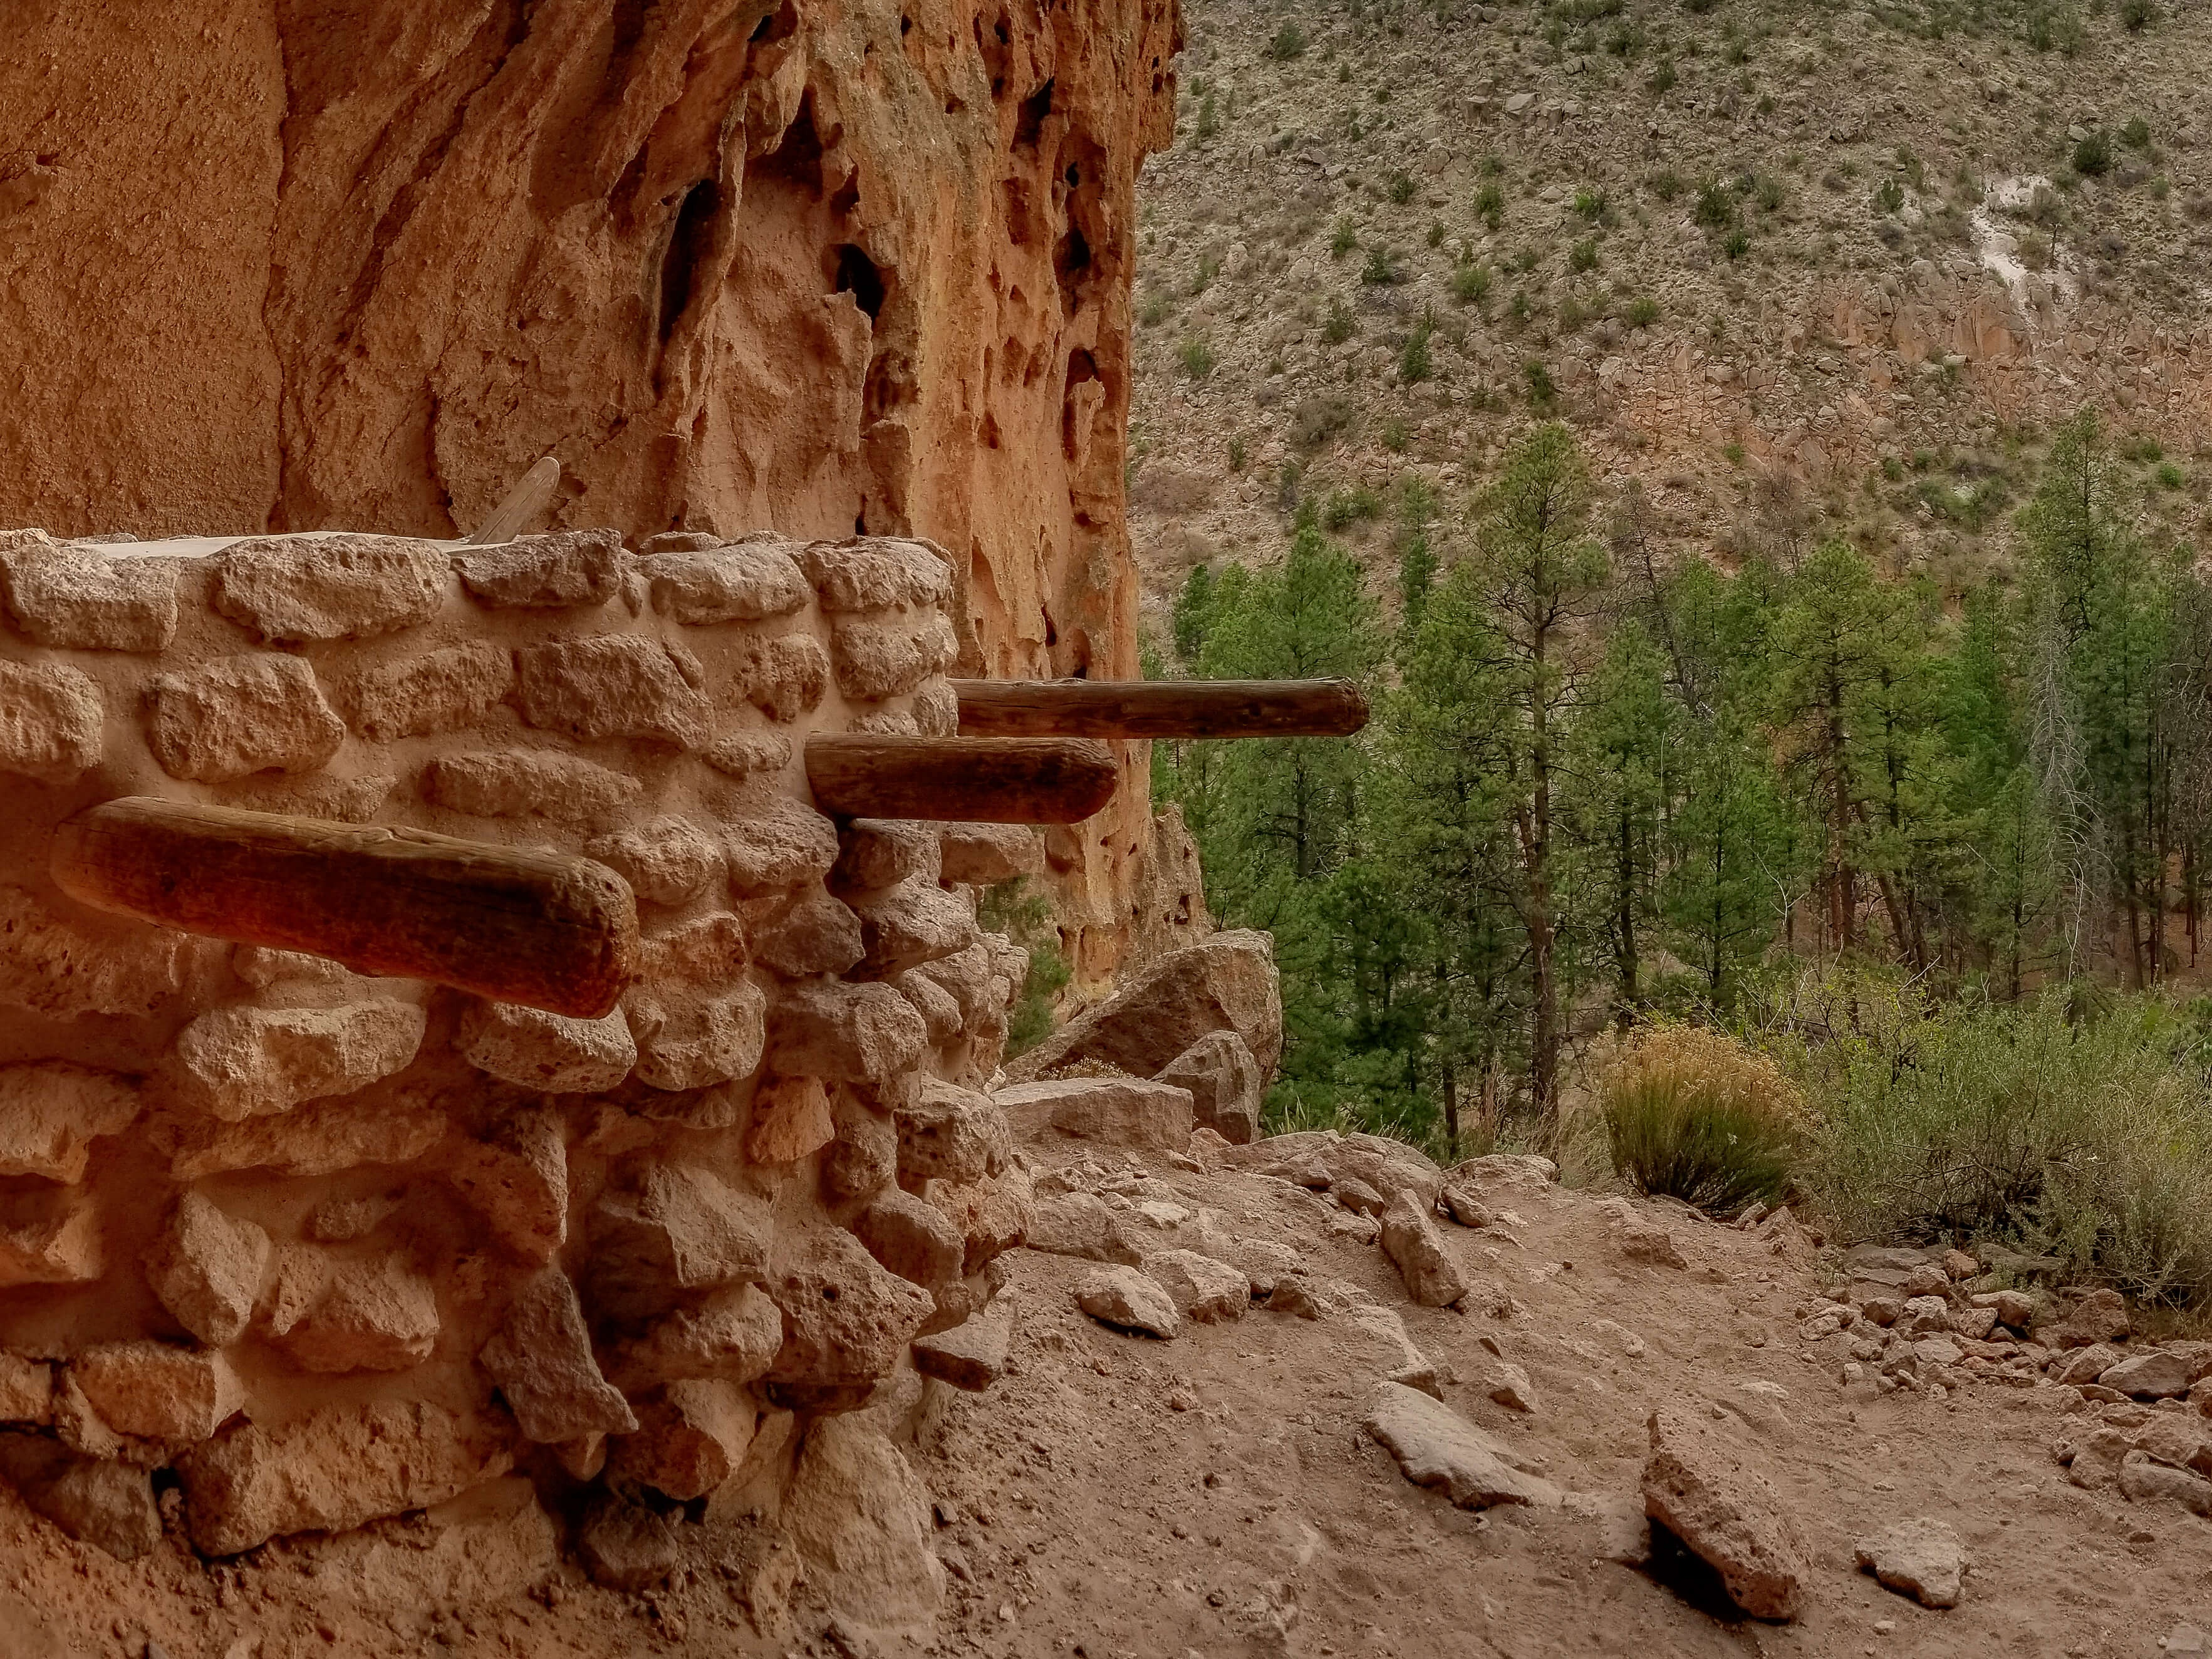 Kiva Bandelier National Monument